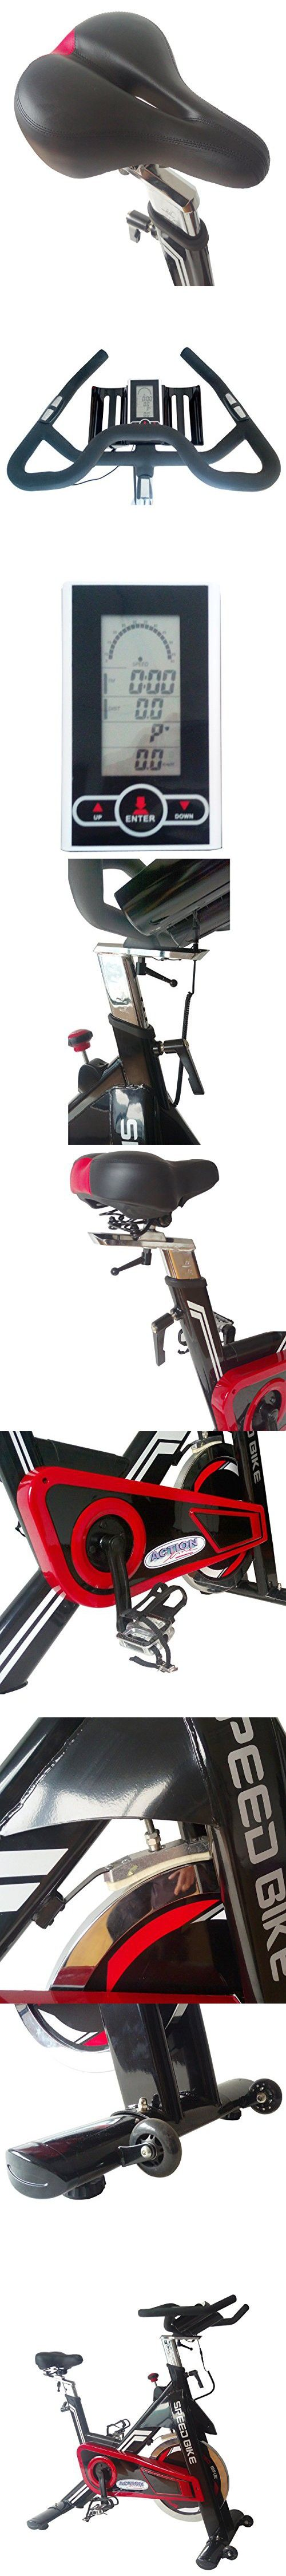 ActionLine A84018 Pro Gym Club Indoor Cycling Bike wirh Computer